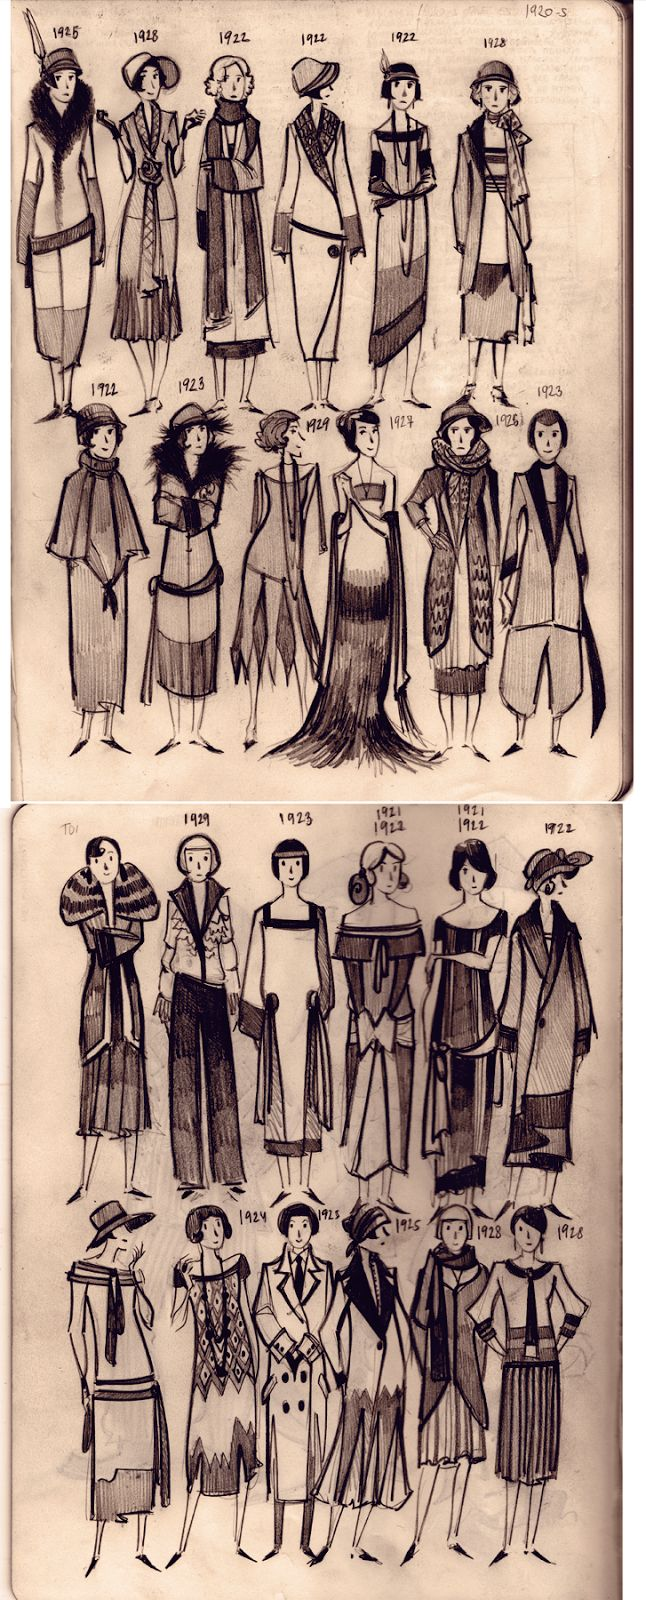 vintage everyday: fashion 1920S ©2010-2016 Phobs0 LINK=>ARTIST'S DEVIANT ART WEBSITE:http://phobs0.deviantart.com/art/20-s-fashion-Moleskine-doodles-181828409